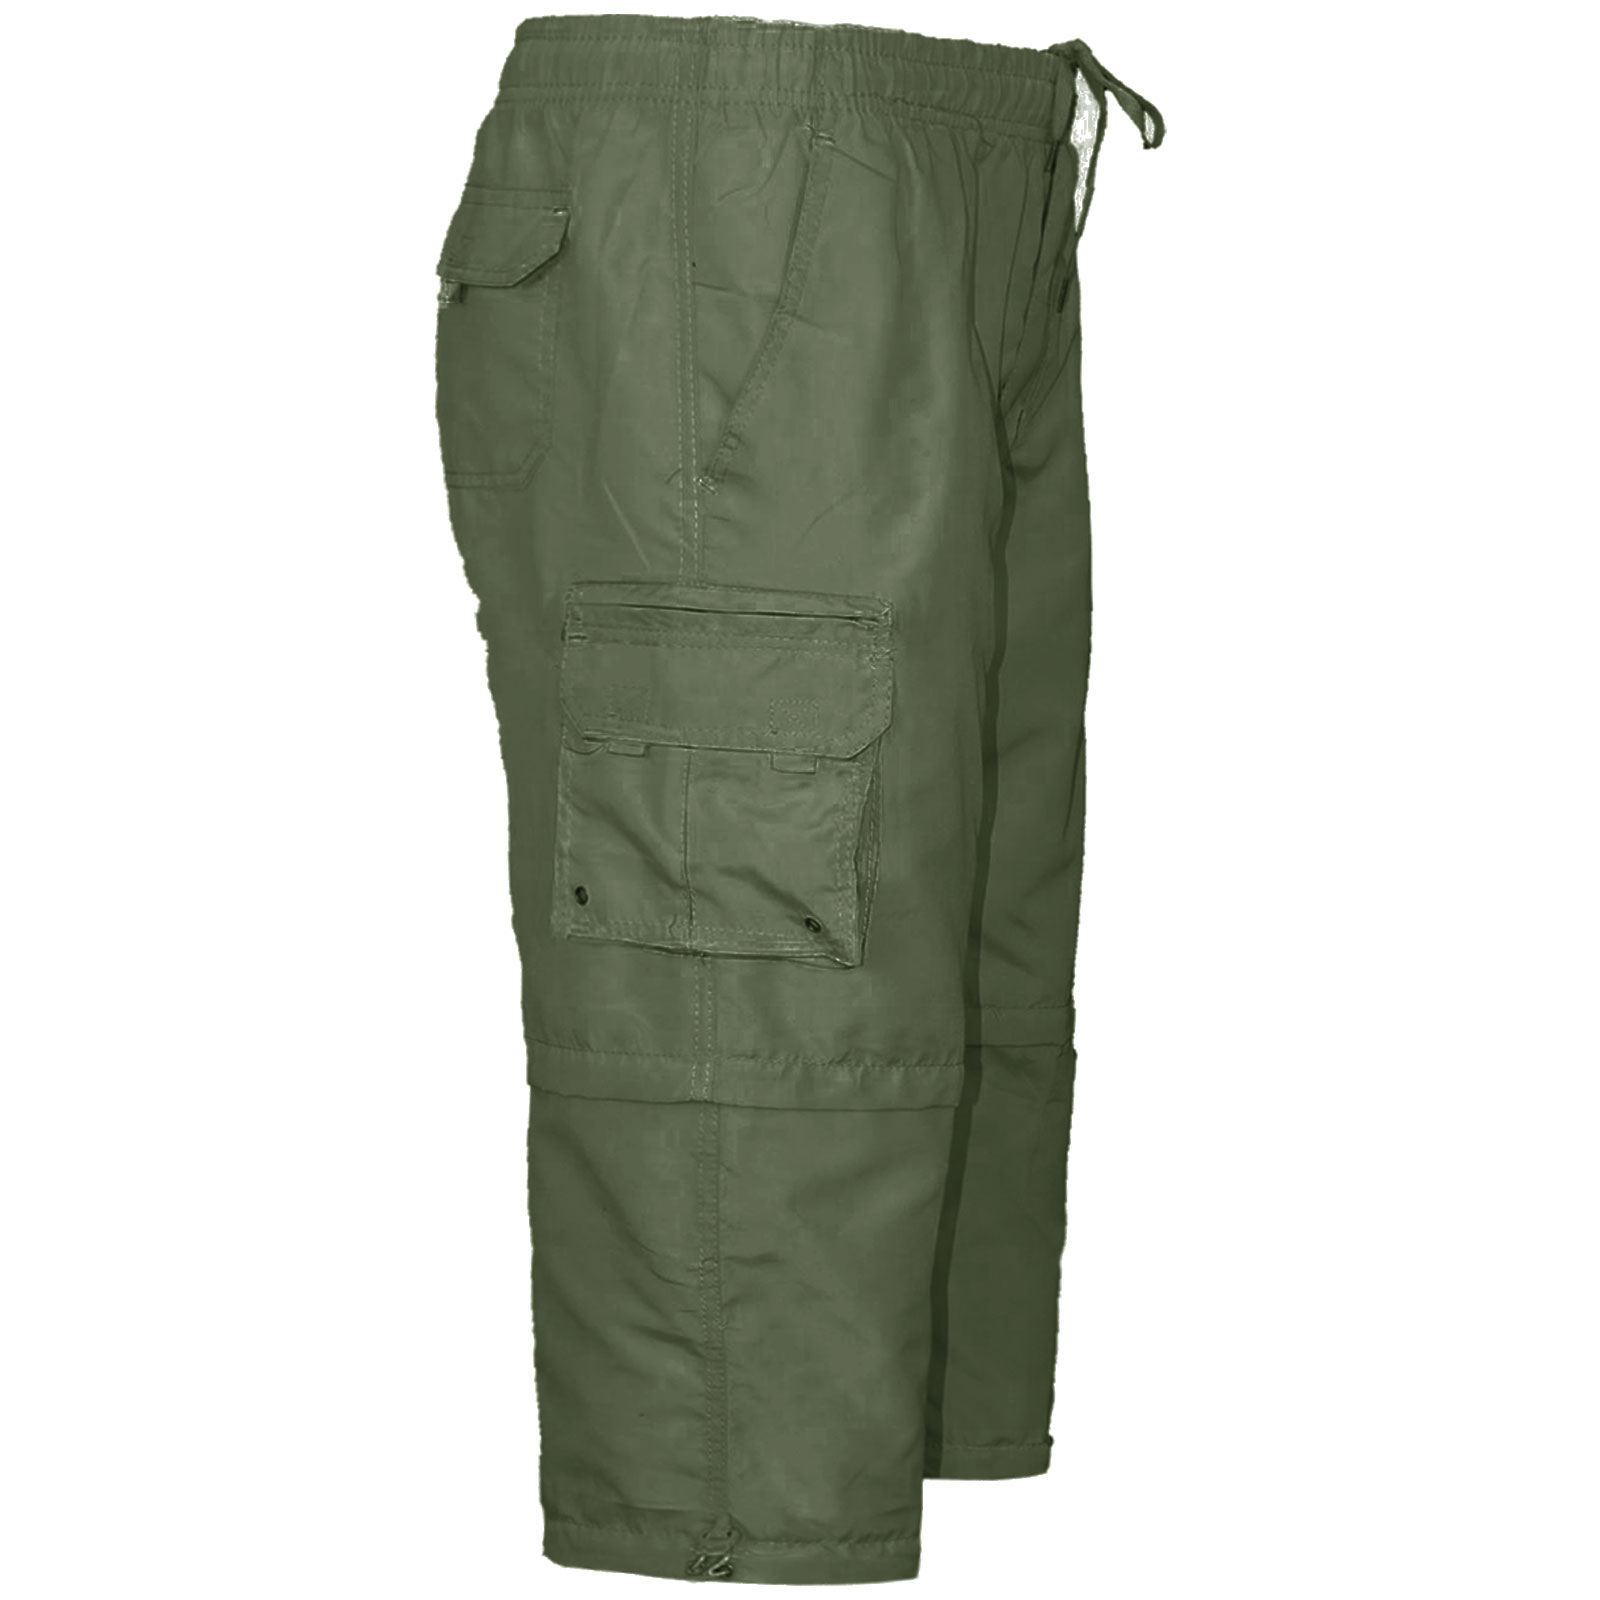 Mens-2-In-1-Long-3-4-Zip-Off-Shorts-Knee-Length-Cargo-Combat-Pants-Work-Walking thumbnail 34